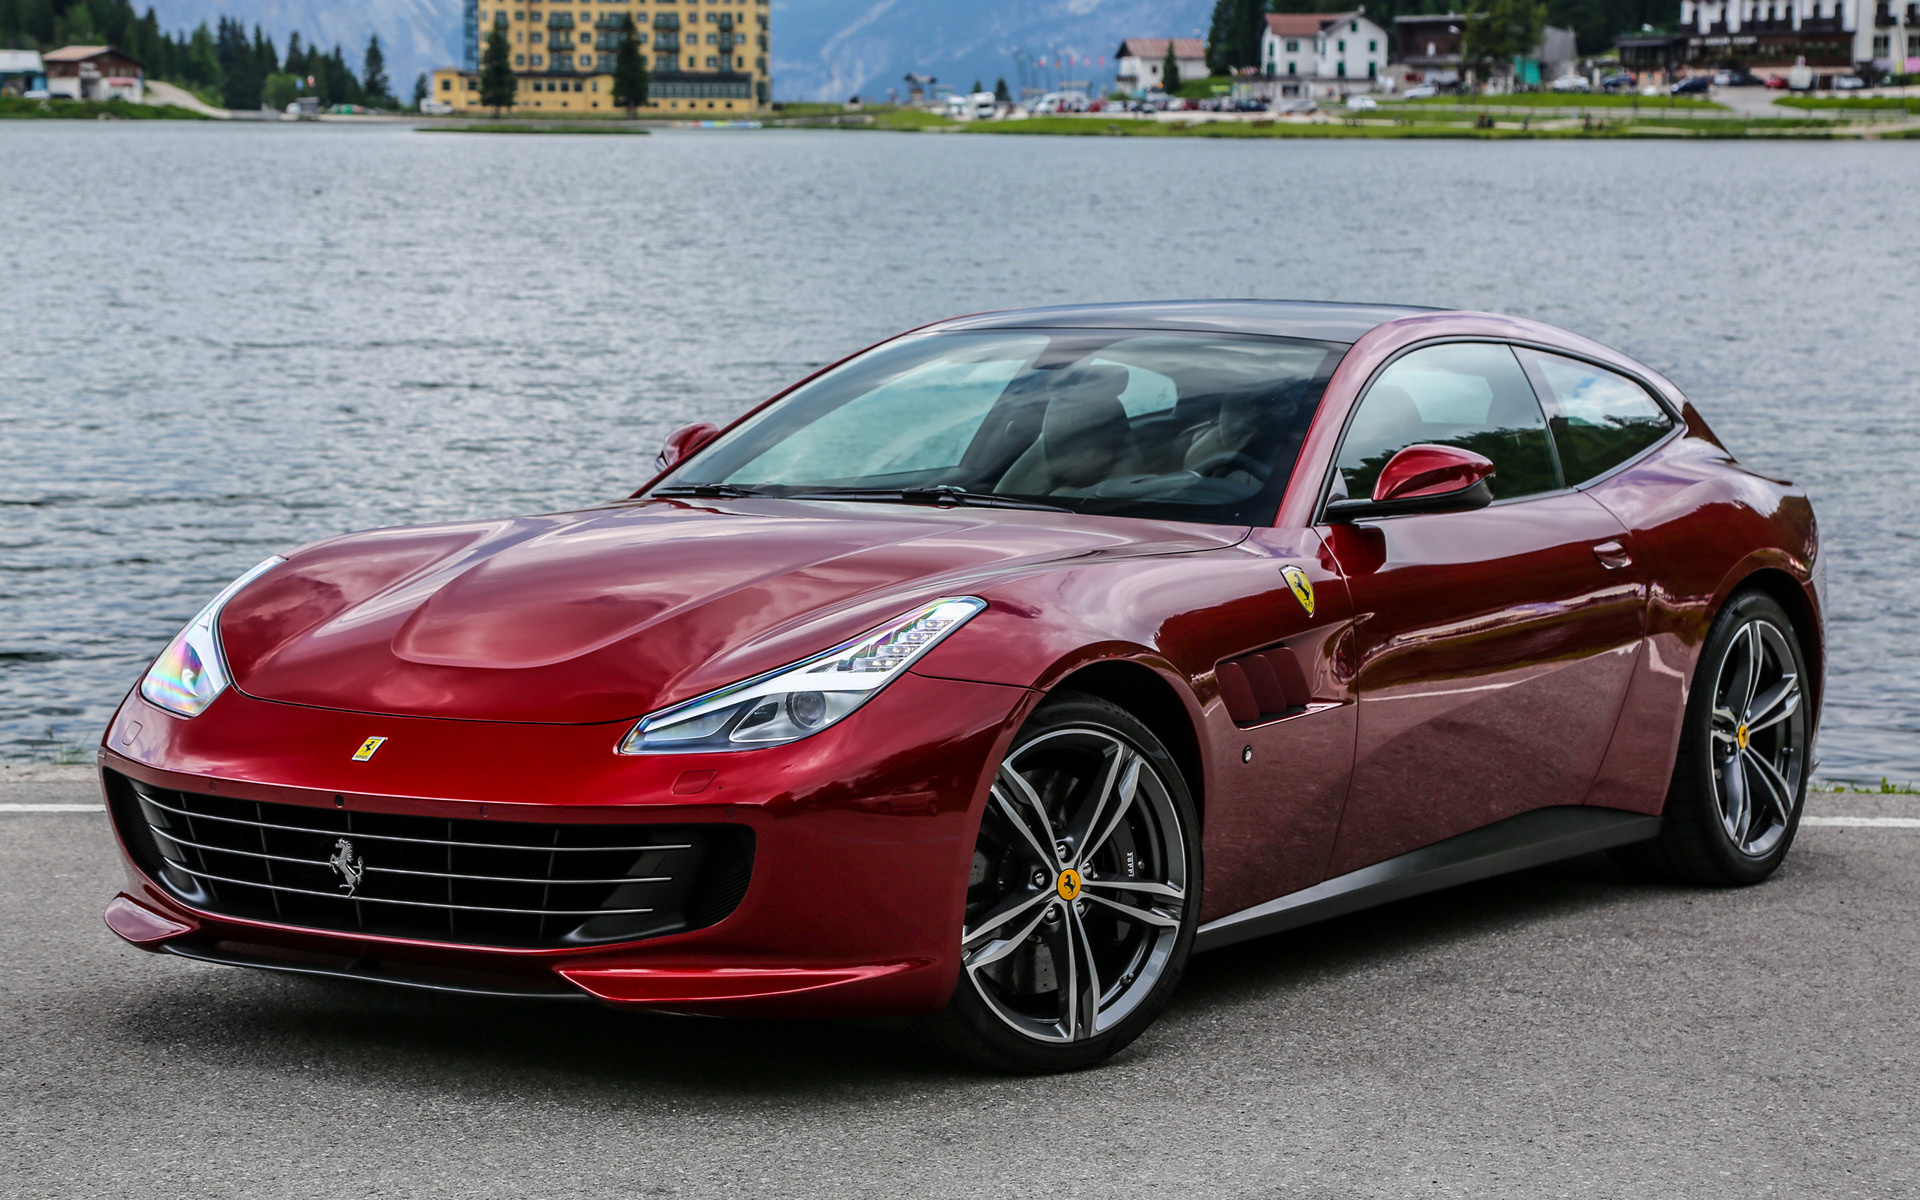 2016 Ferrari GTC4Lusso - Wallpapers and HD Images | Car Pixel